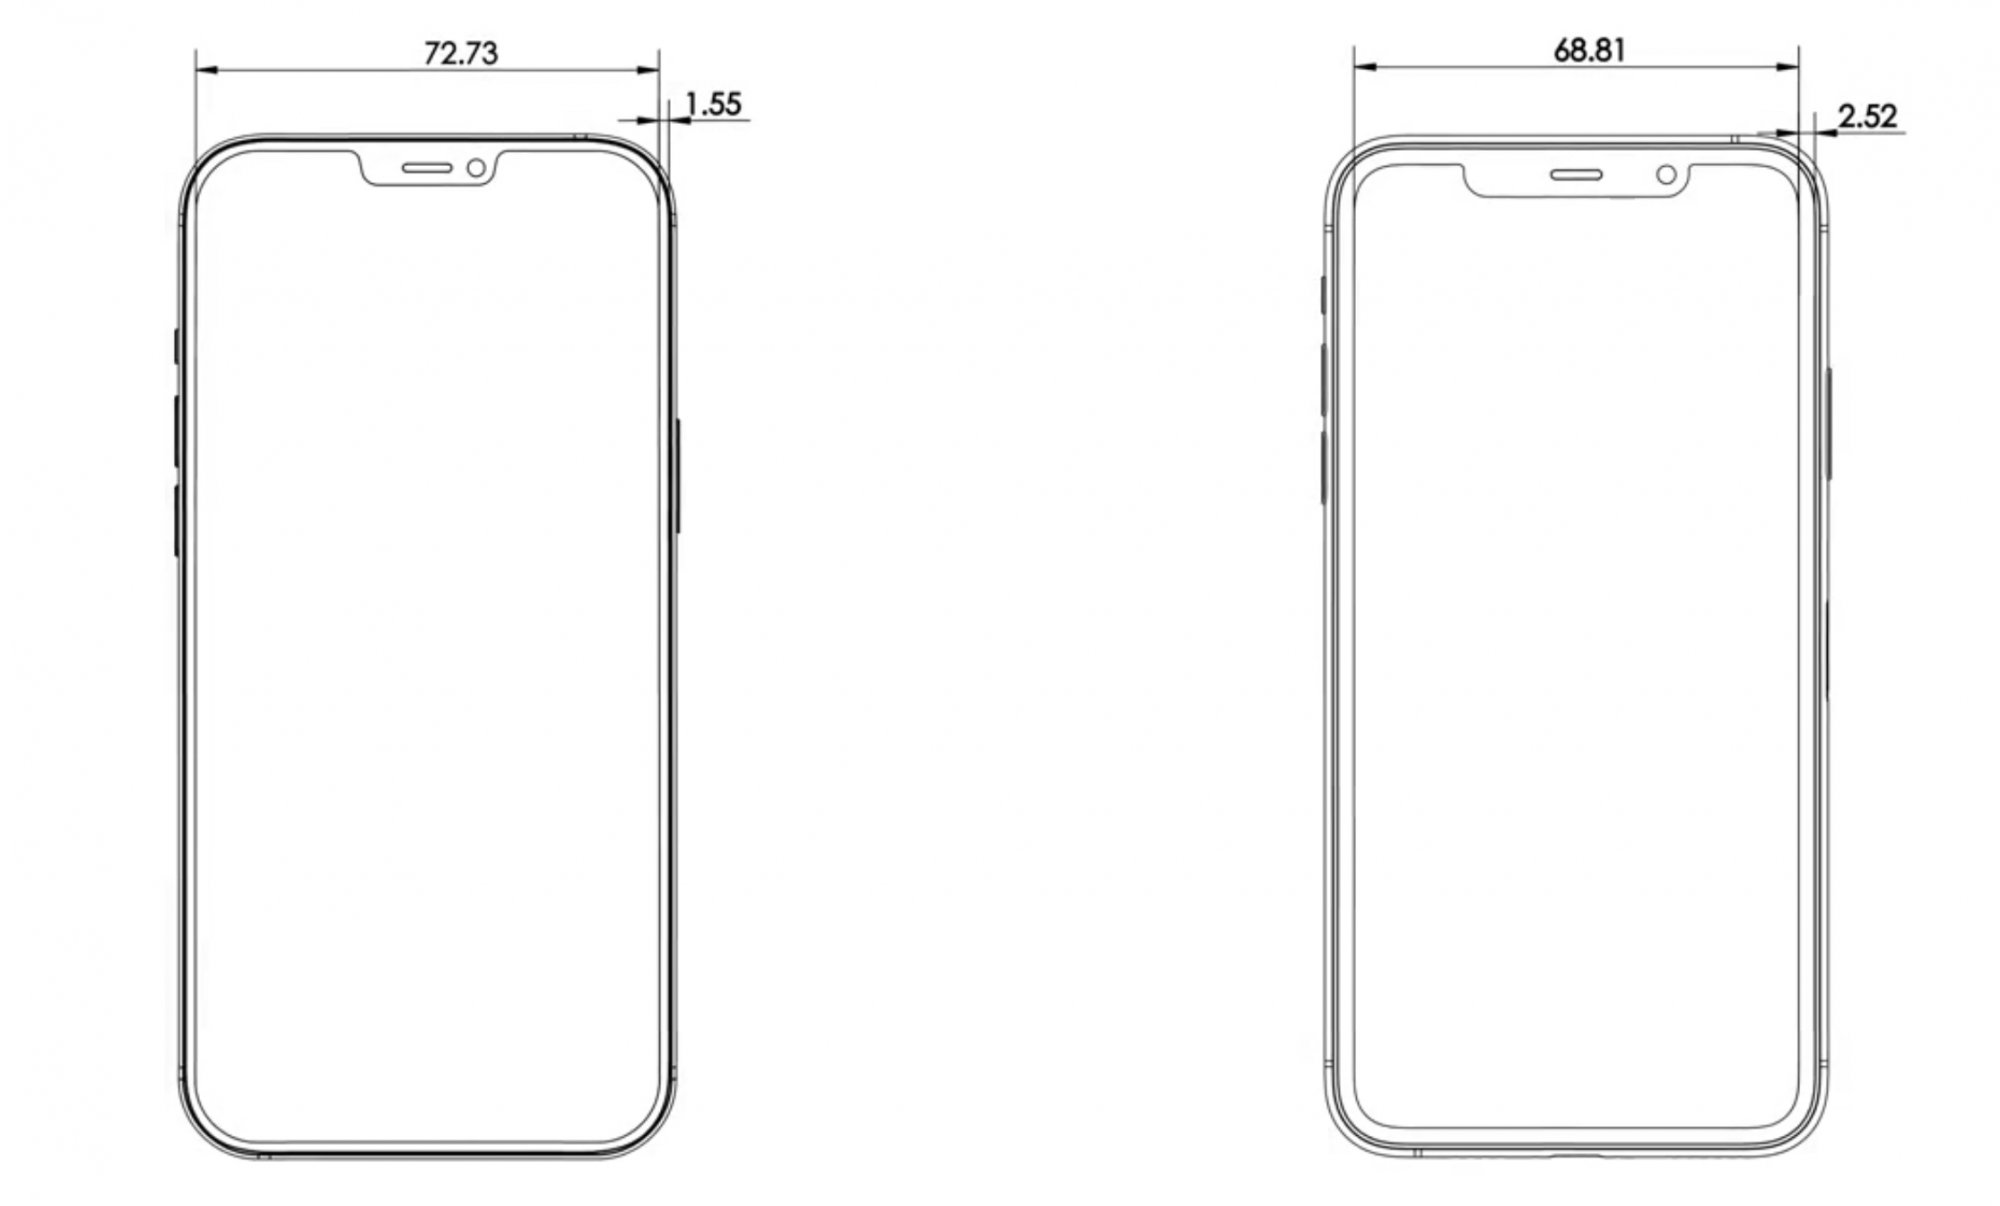 Leaked iPhone 12 Pro Max Schematics Show Thinner Design